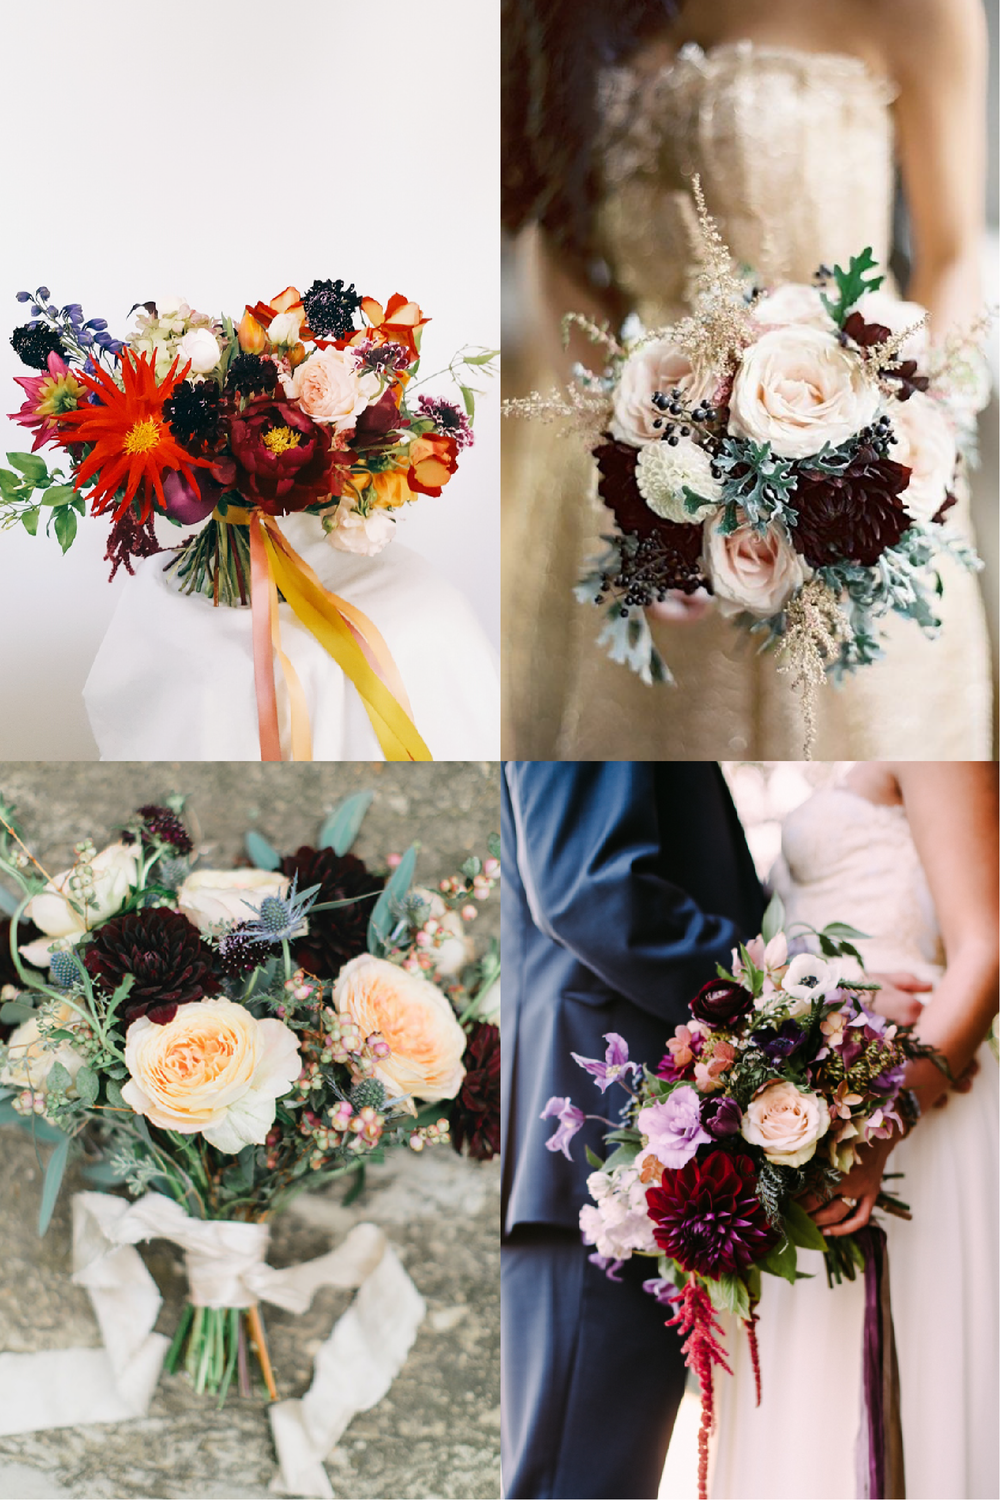 FROM CLOCKWISE, FROM TOP LEFT: FLOWERS BY LIME TREE BOWER ;  PHOTO BY EDWARD OSBORN PHOTOGRAPHY; FLOWERS BY CAROLINE O'DONNELL AND PHOTO BY CAMBRIA GRACE PHOTOGRAPHY; FLOWERS BY  WHIMSICAL FLORAL DESIGN AND PHOTO BY  RACHEL MAY PHOTOGRAPHY.